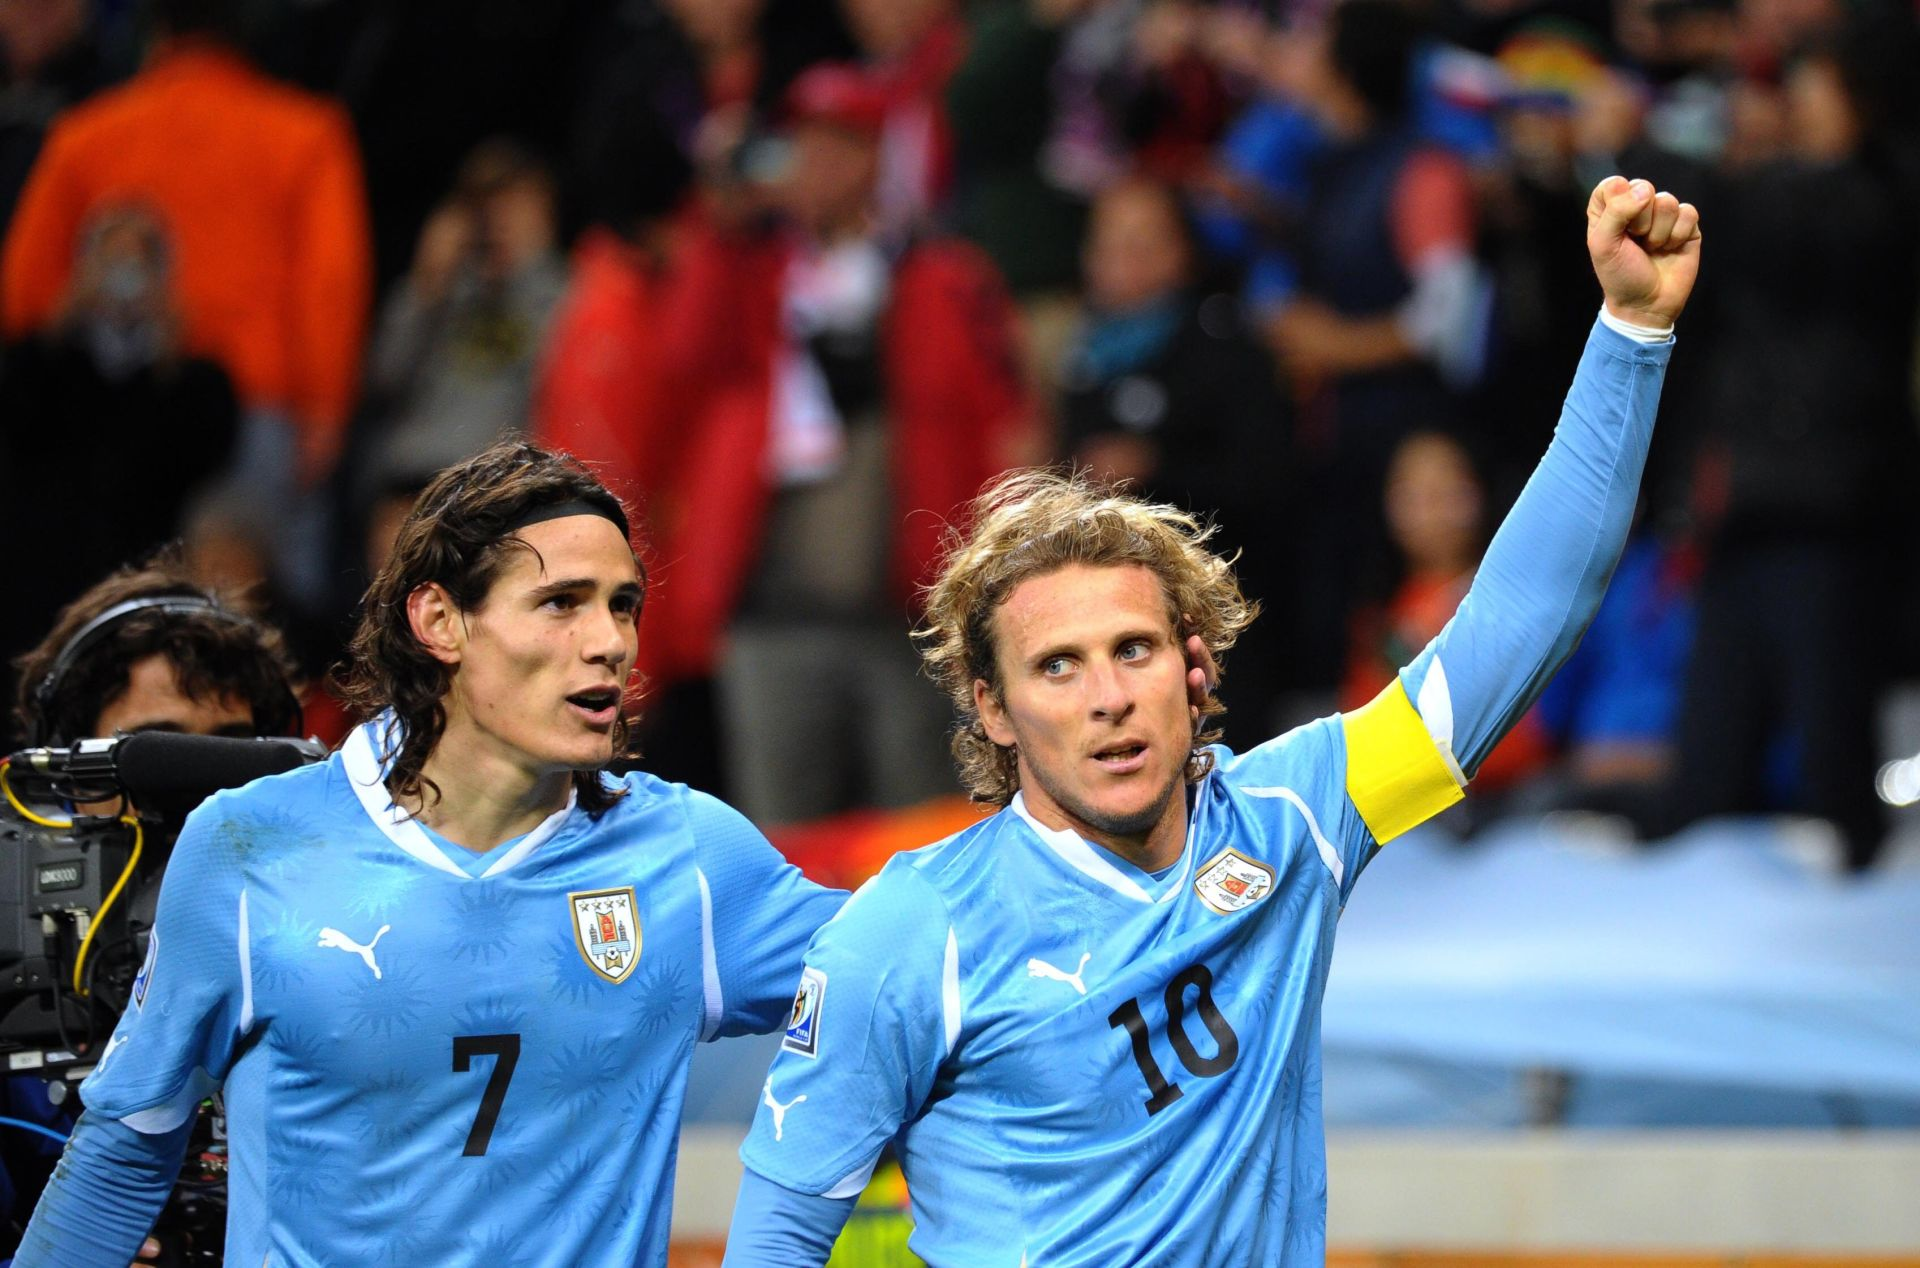 1/2 finale cavani (edinson) forlan (diego) 06.07.2010 RPA FIFA WORLD CUP MISTRZOSTWA SWIATA RPA 2010 MUNDIAL POLFINAL PILKA NOZNA HOLANDIA vs URUGWAJ FOT. PRESSE SPORTS/NEWSPIX.PL POLAND ONLY !!! --- Newspix.pl *** Local Caption *** www.newspix.pl mail us: info@newspix.pl call us: 0048 022 23 22 222 --- Polish Picture Agency by Axel Springer Poland